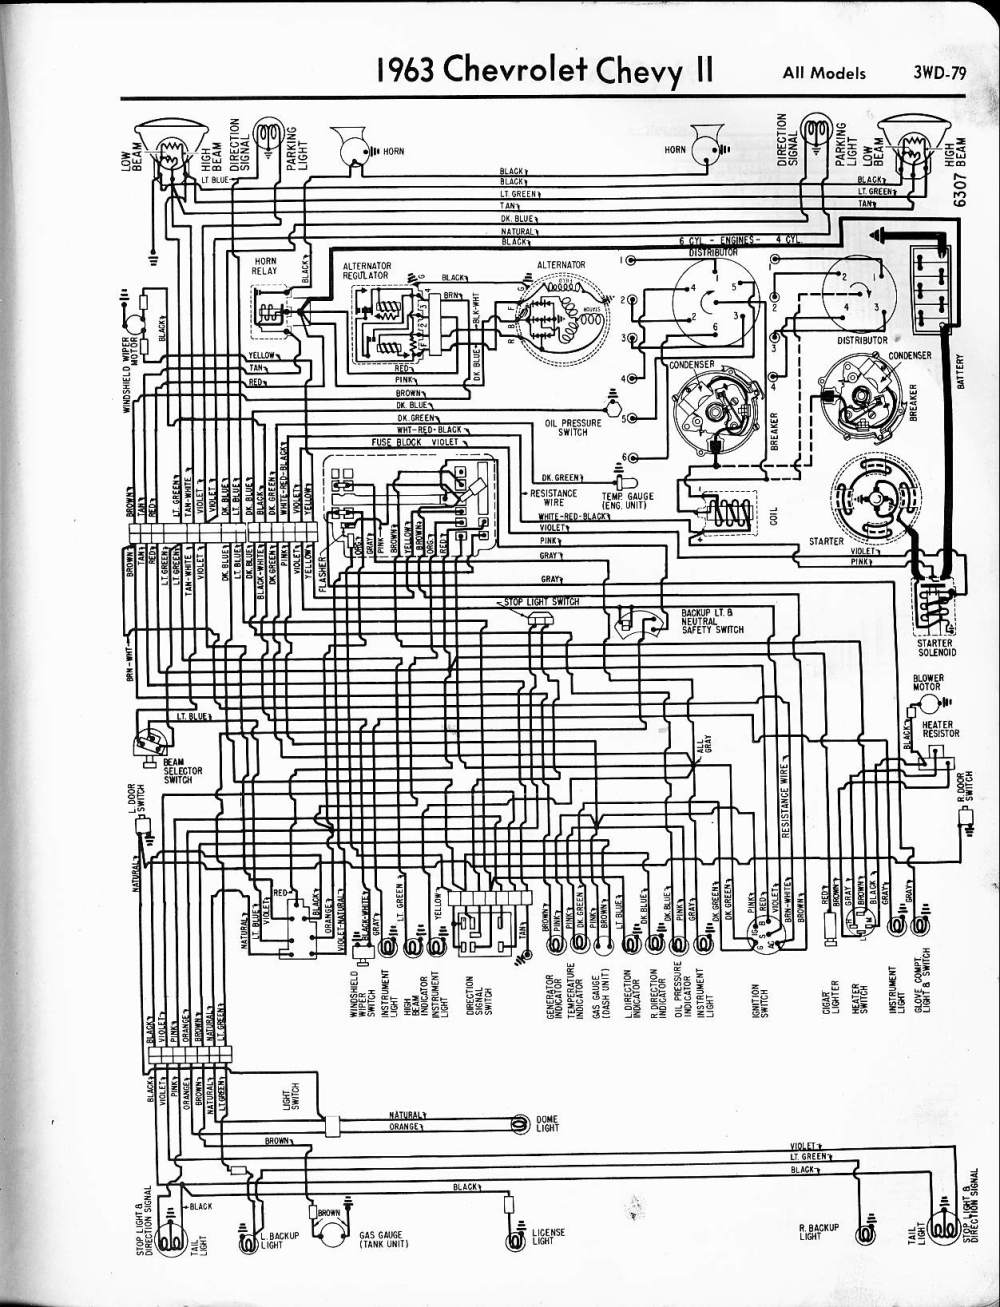 medium resolution of wrg 2199 1974 camaro wiring harness diagram1963 chevy impala wiring harness clips 14